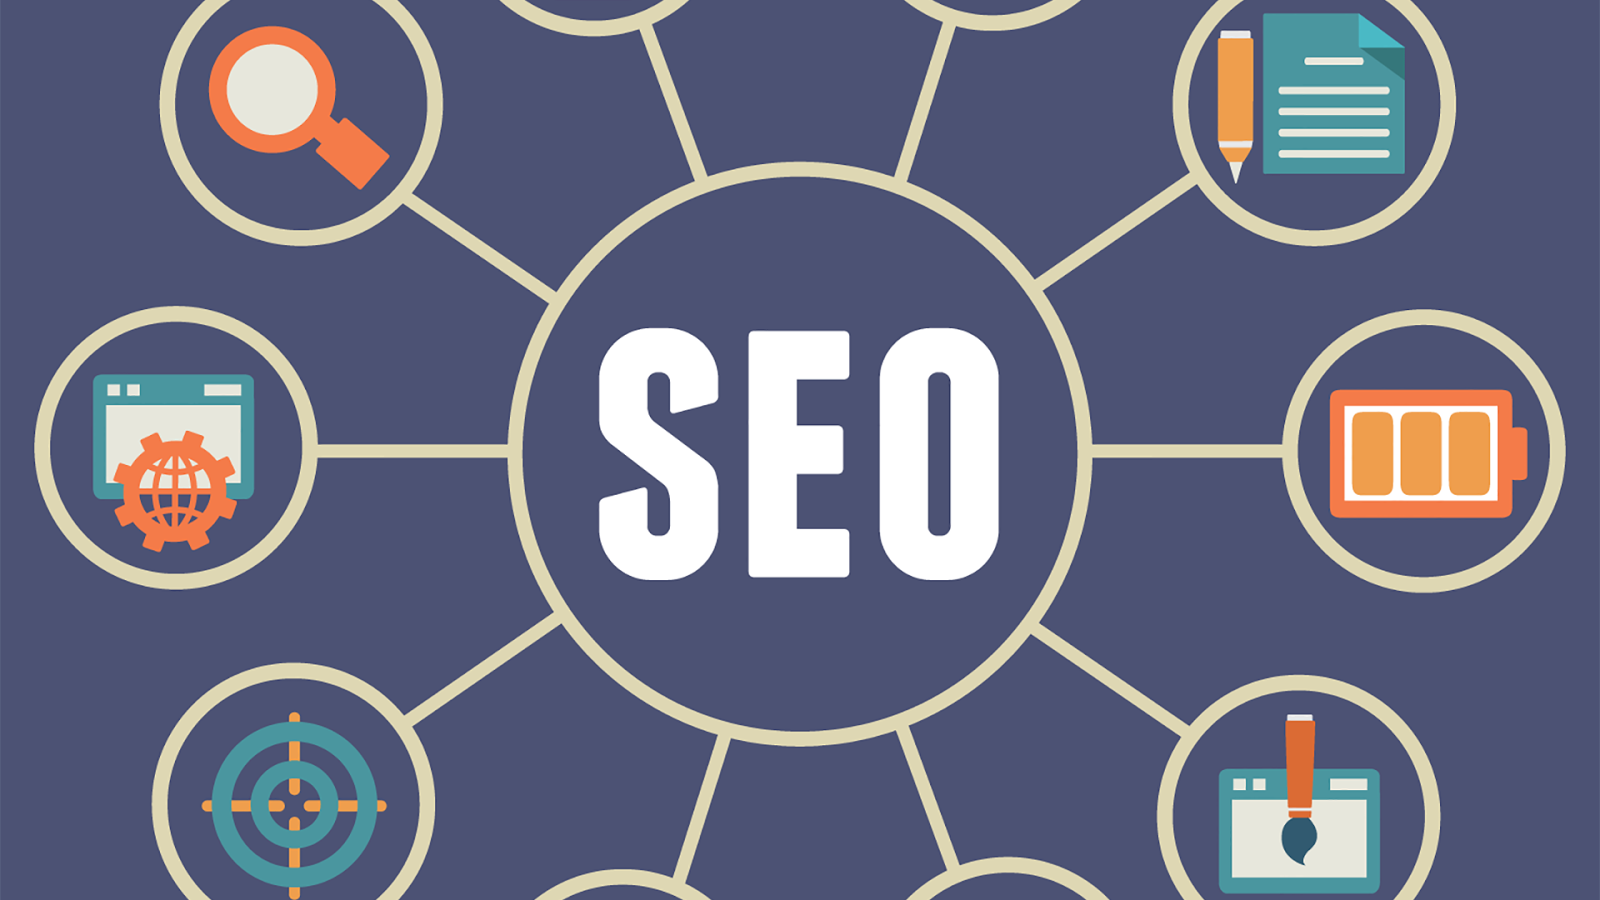 Learn seo with the periodic part 2 table doing business with learn seo with the periodic part 2 table doing business with internet gamestrikefo Choice Image